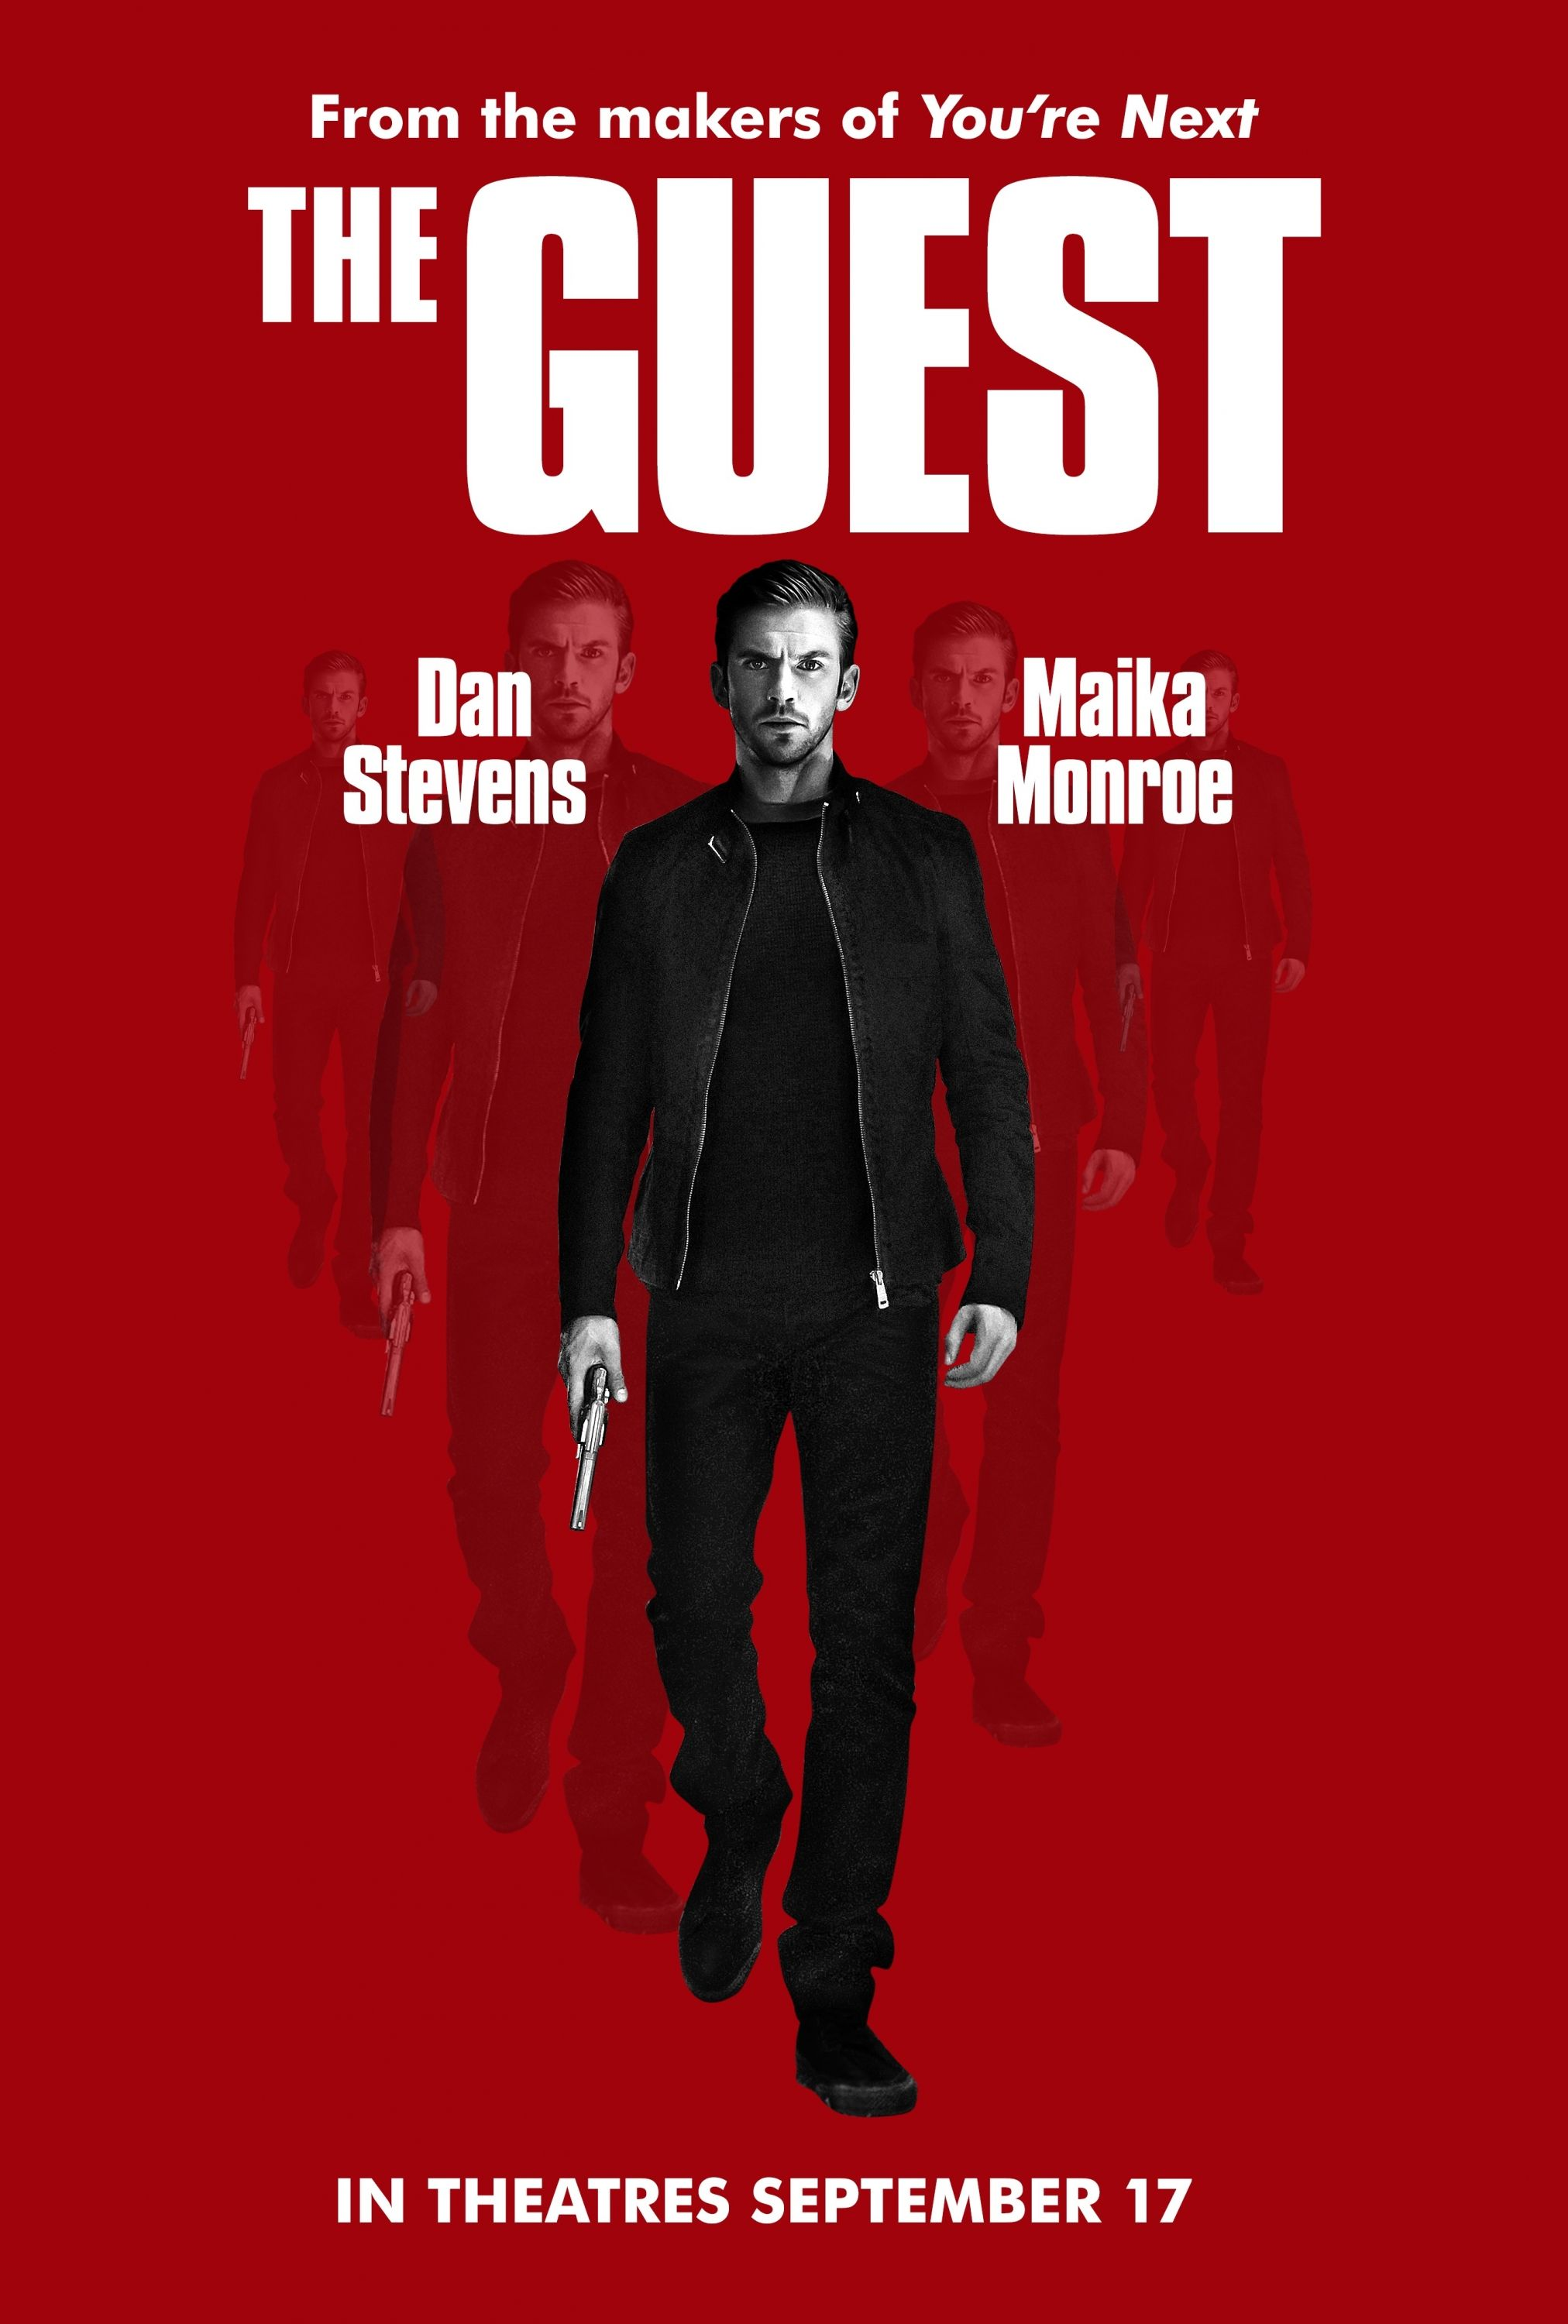 Indie joint. (With images) | The guest 2014, Dan stevens, Be with ...